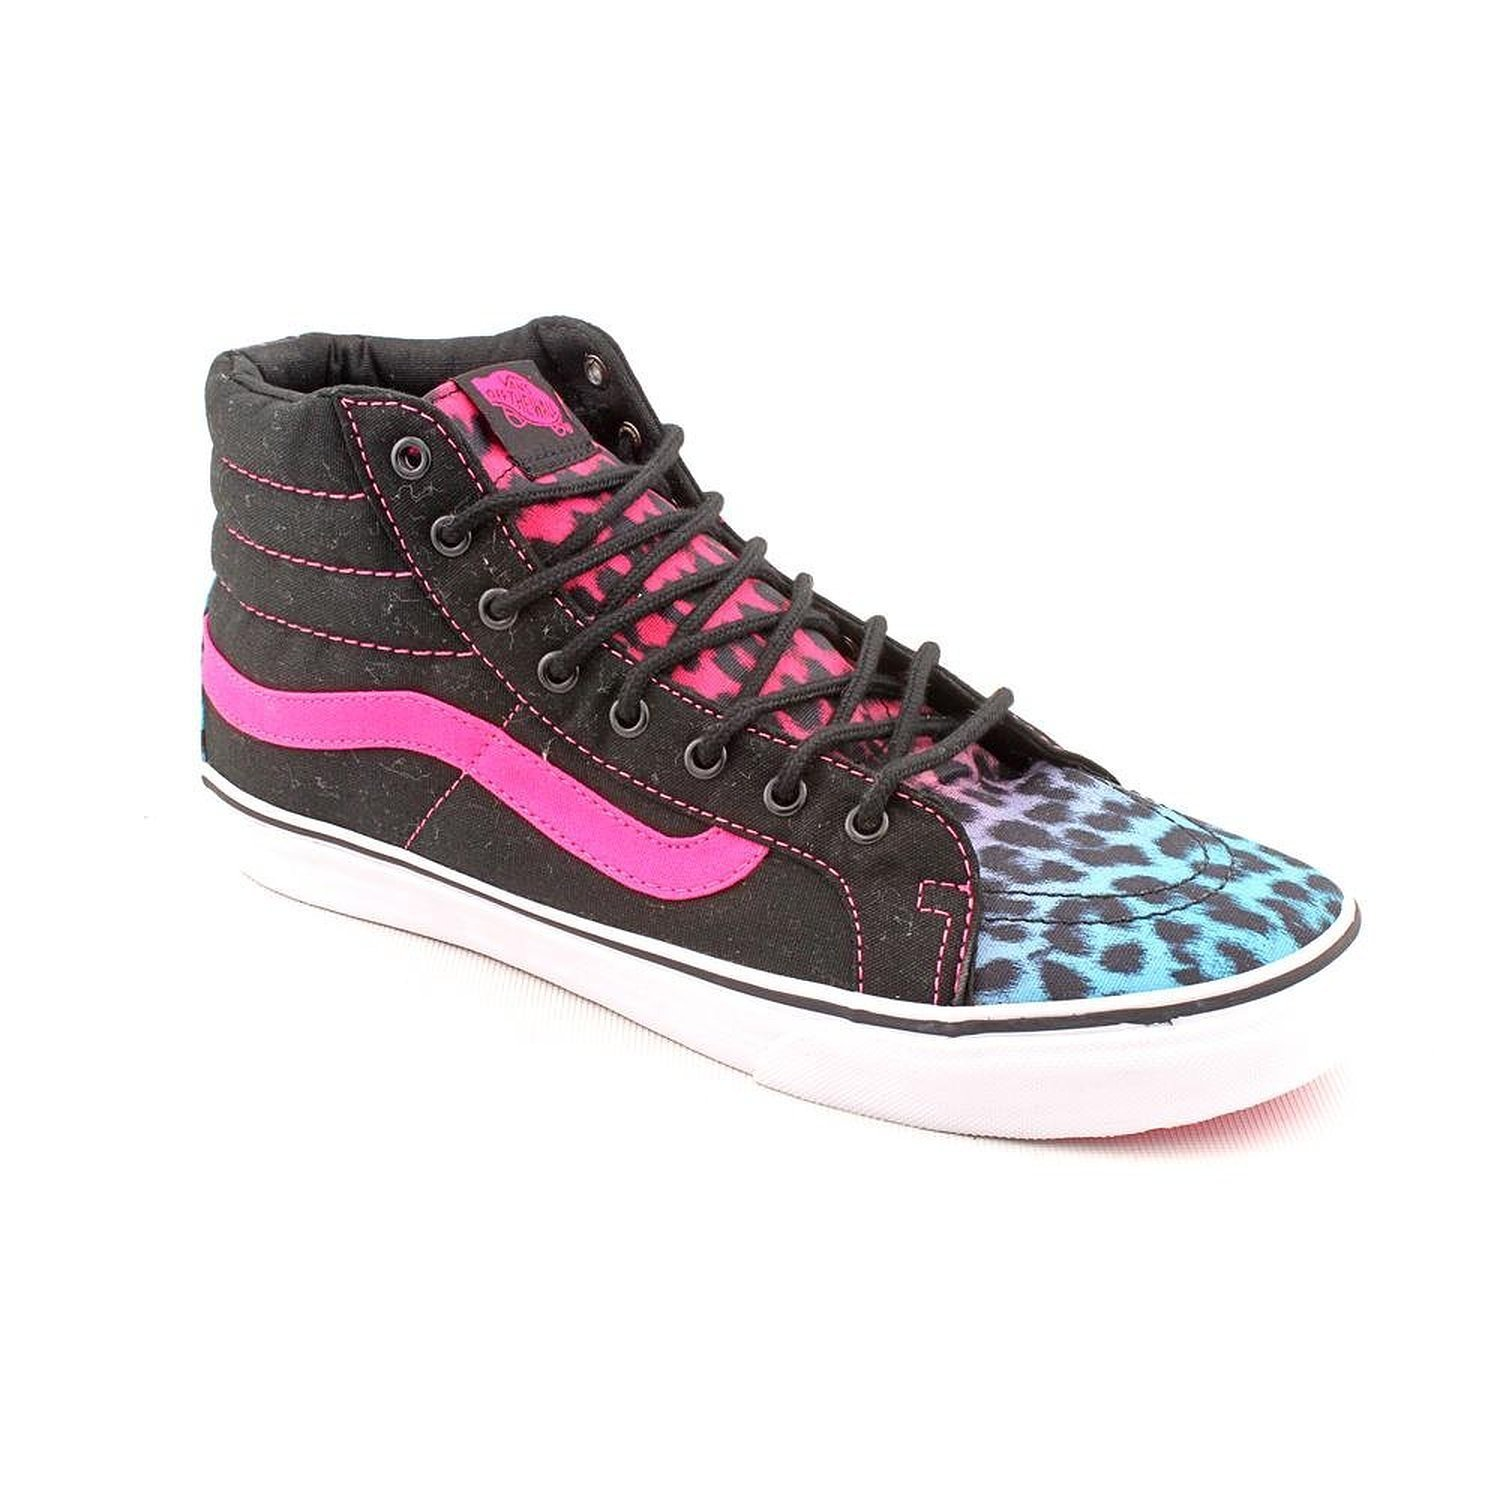 c9eddab00732c7 Get Quotations · Vans Womens Sk8-Hi Slim Leopard Magenta Blue Black  Skateboarding Shoes 5 B(M